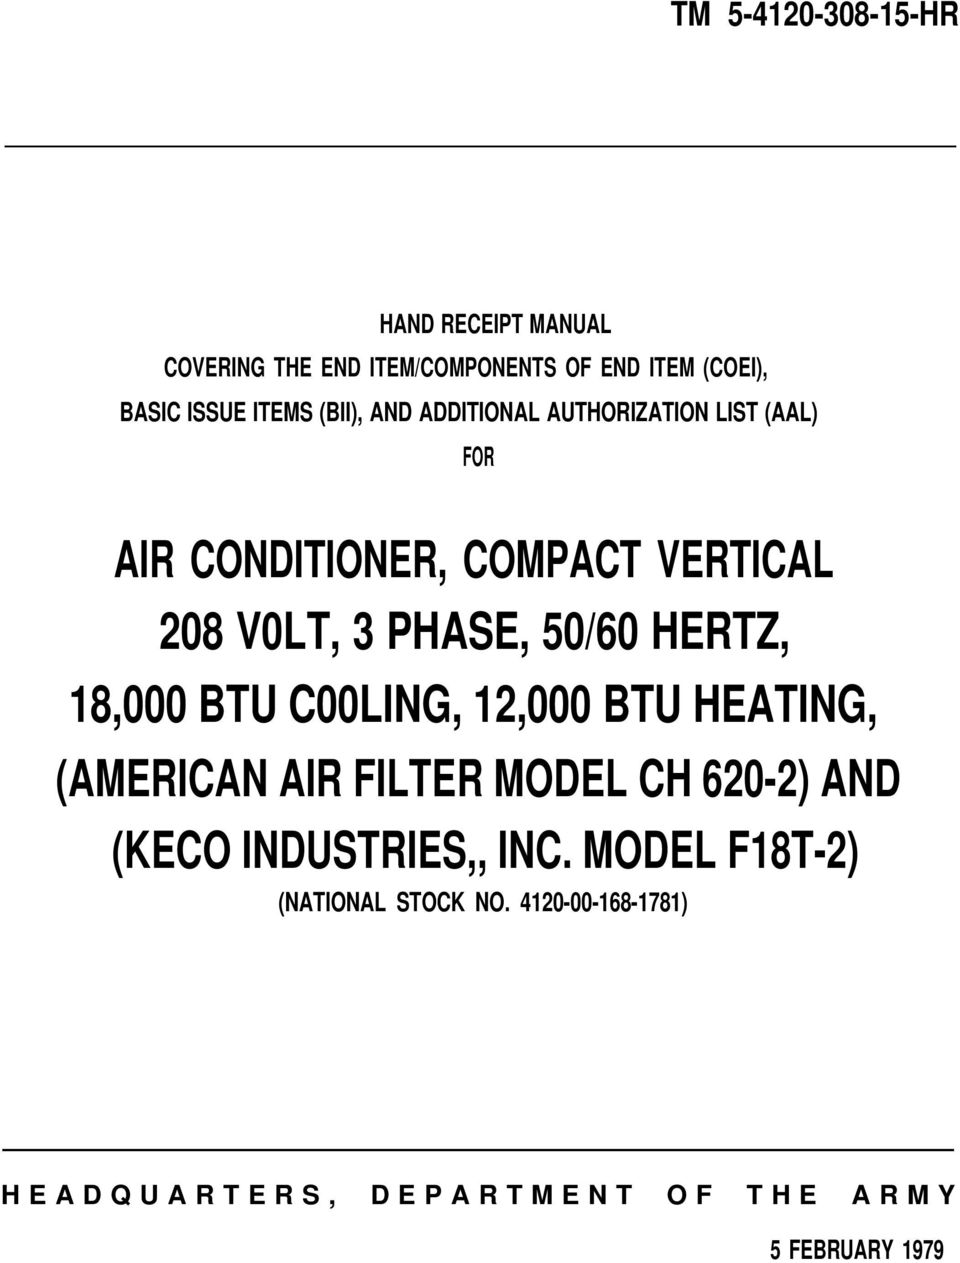 50/60 HERTZ, 18,000 BTU C00LING, 12,000 BTU HEATING, (AMERICAN AIR FILTER MODEL CH 620-2) AND (KECO